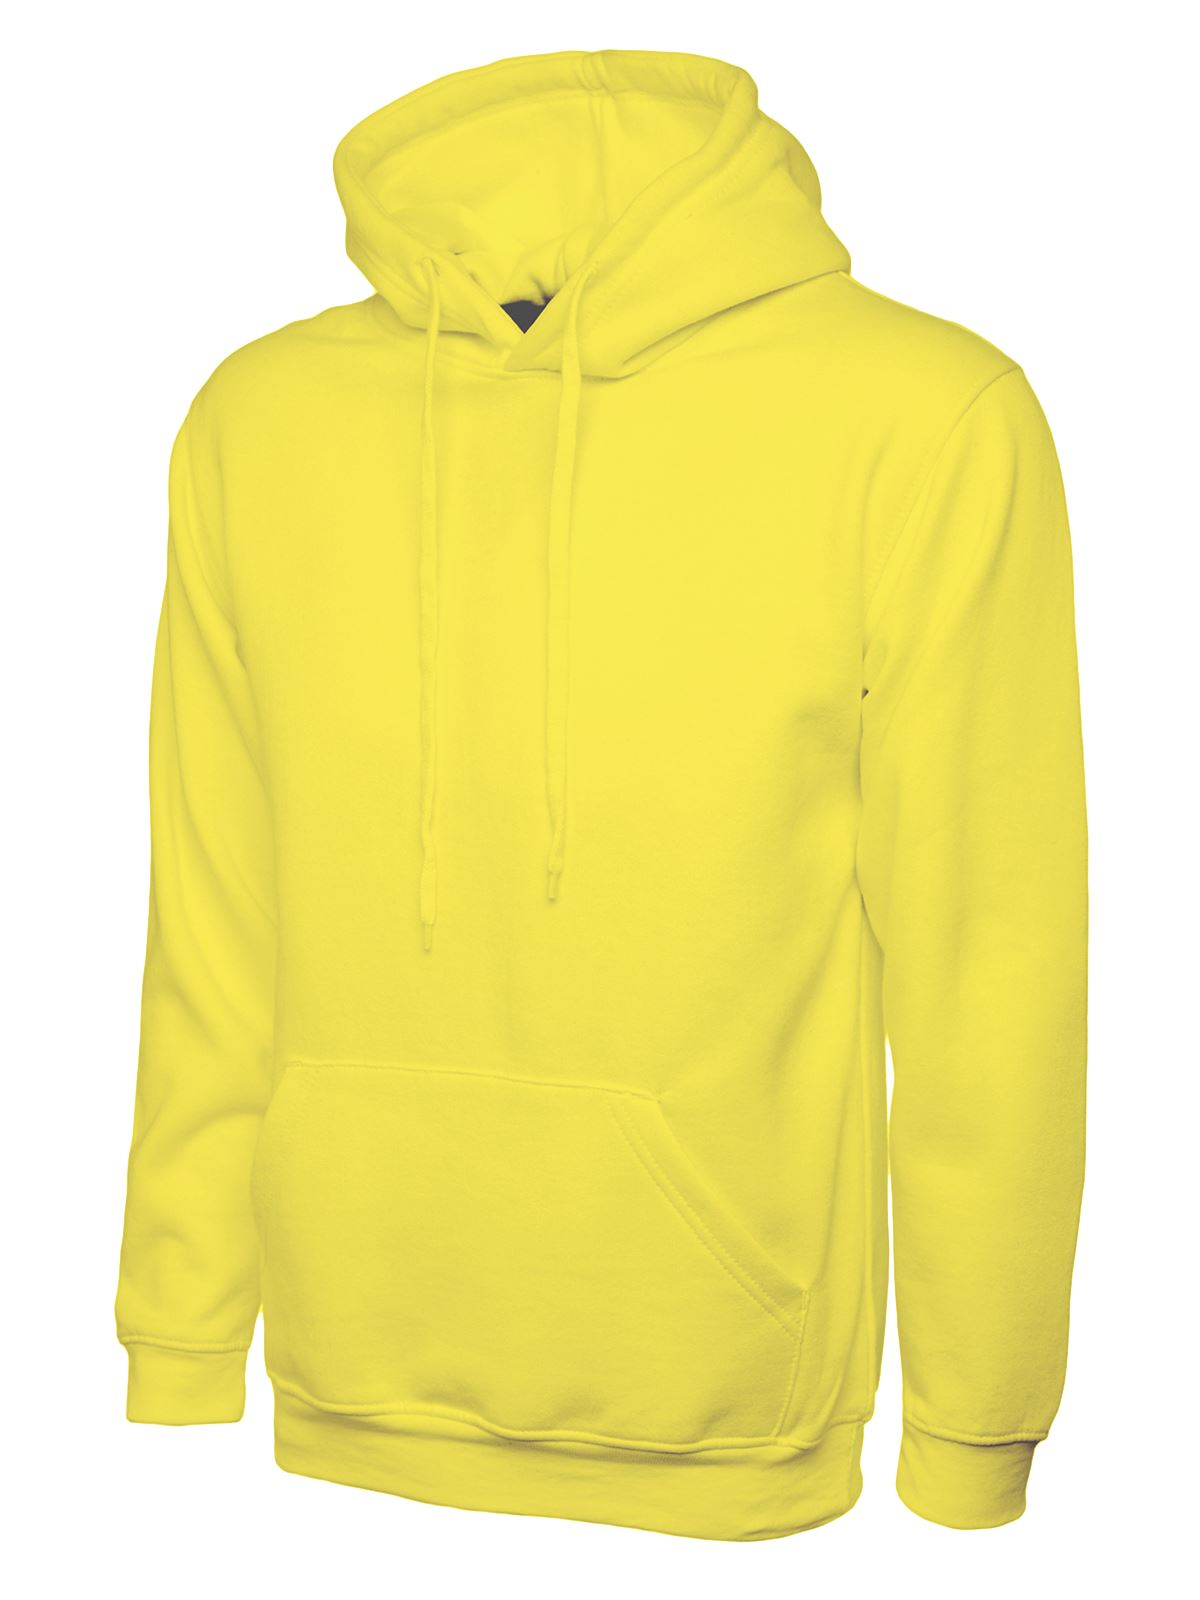 Mens-amp-Womens-Classic-Hooded-Sweatshirt-Hoodie-Jumper-Sweat-Top-Cotton-Warm-Lot